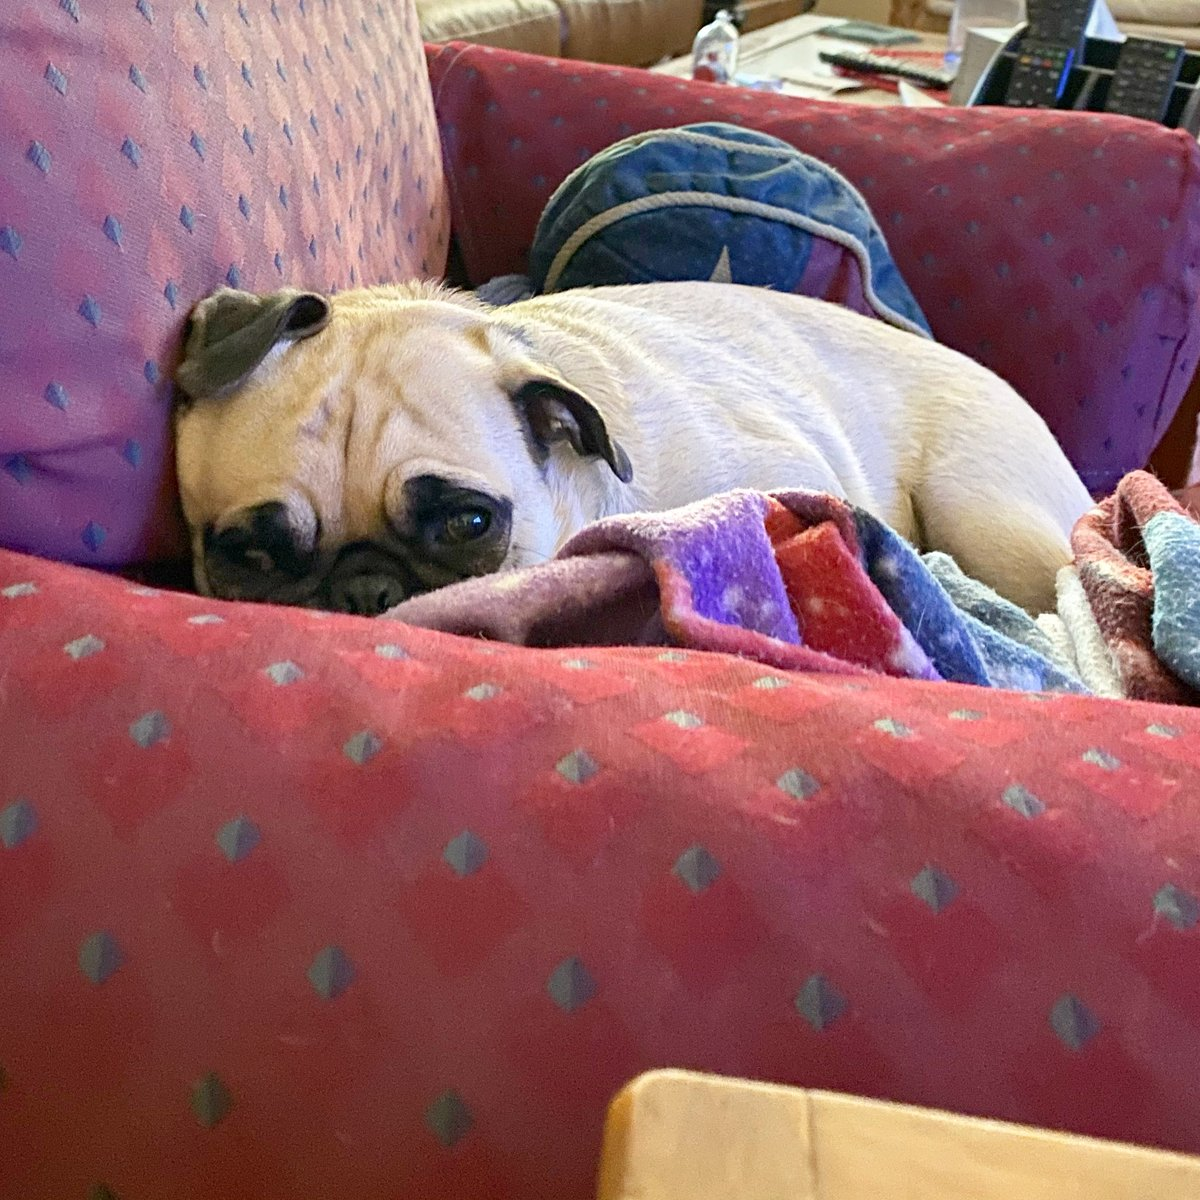 Monday vibes—it's chilly today! #MondayMorning #MatchaThePug<br>http://pic.twitter.com/G1rzb0wf37